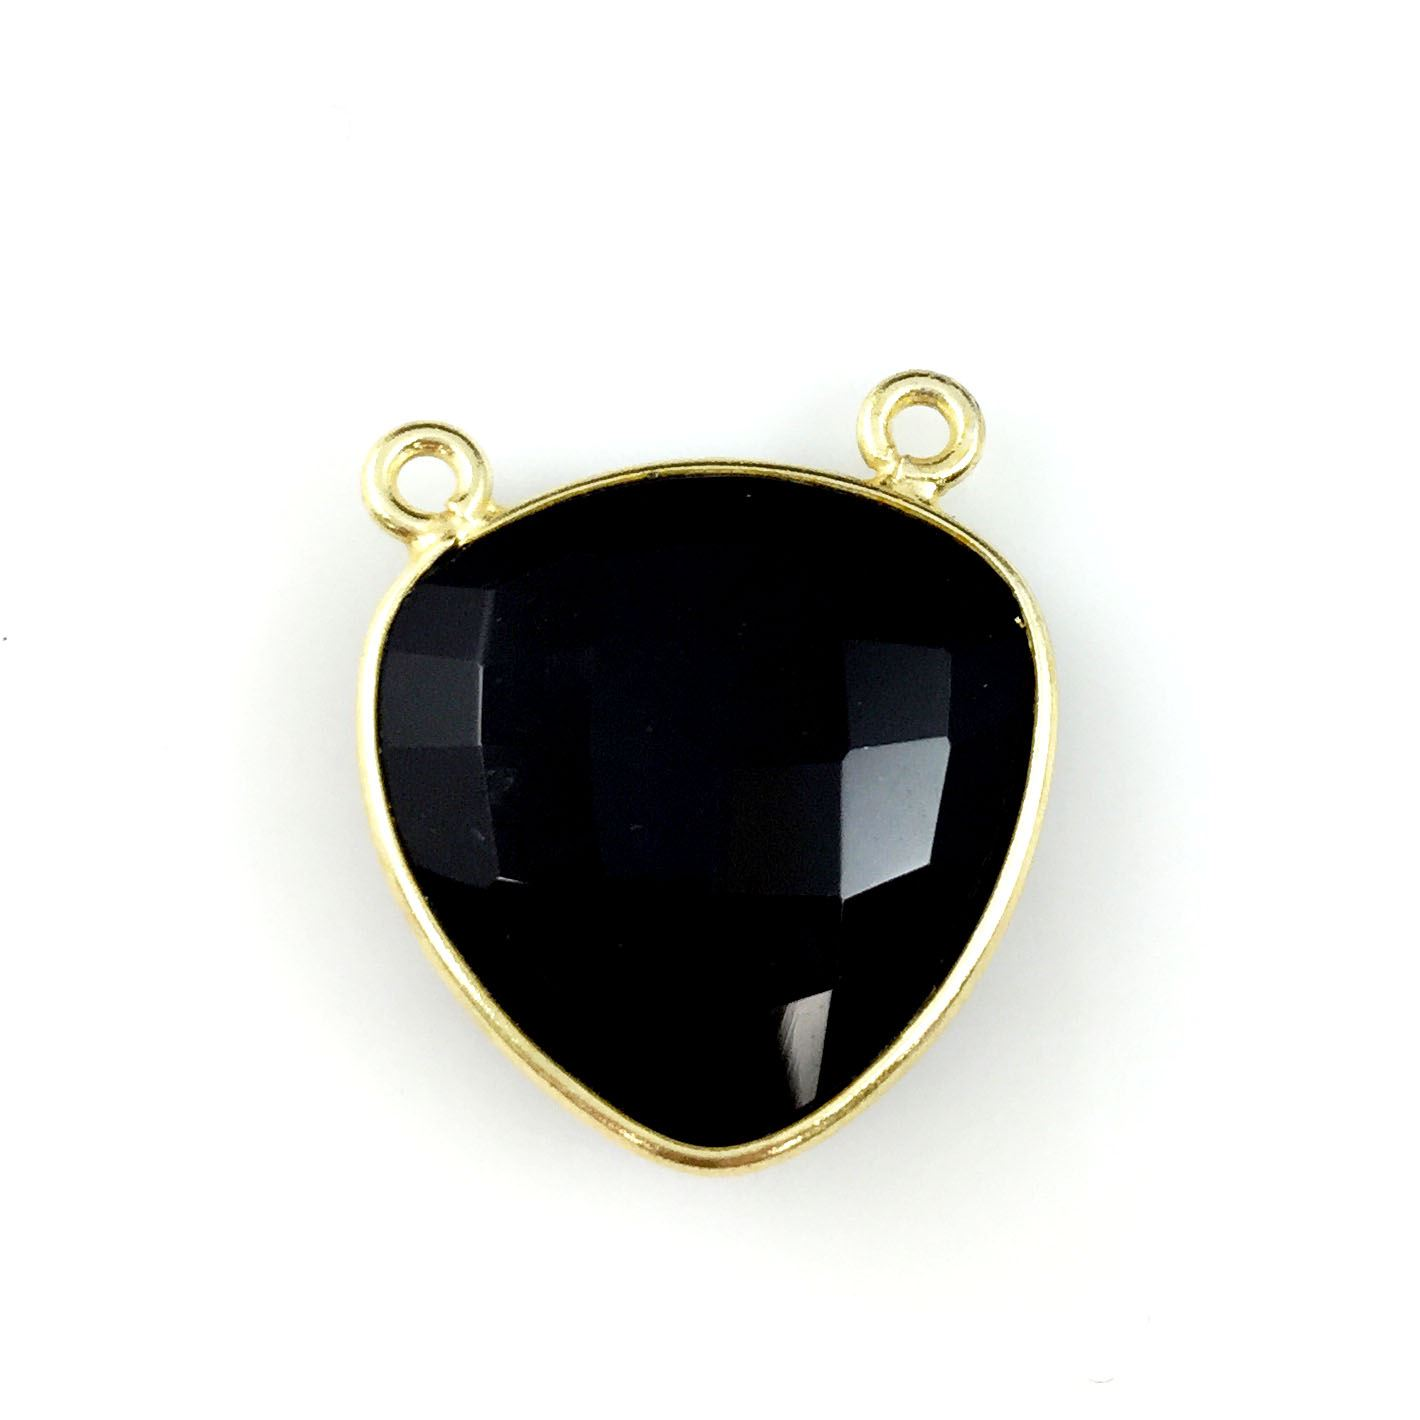 Bezel Gemstone Connector Pendant - Black Onyx - Gold plated Sterling Silver - Large Trillion Shaped Faceted - 18 mm - 1 piece